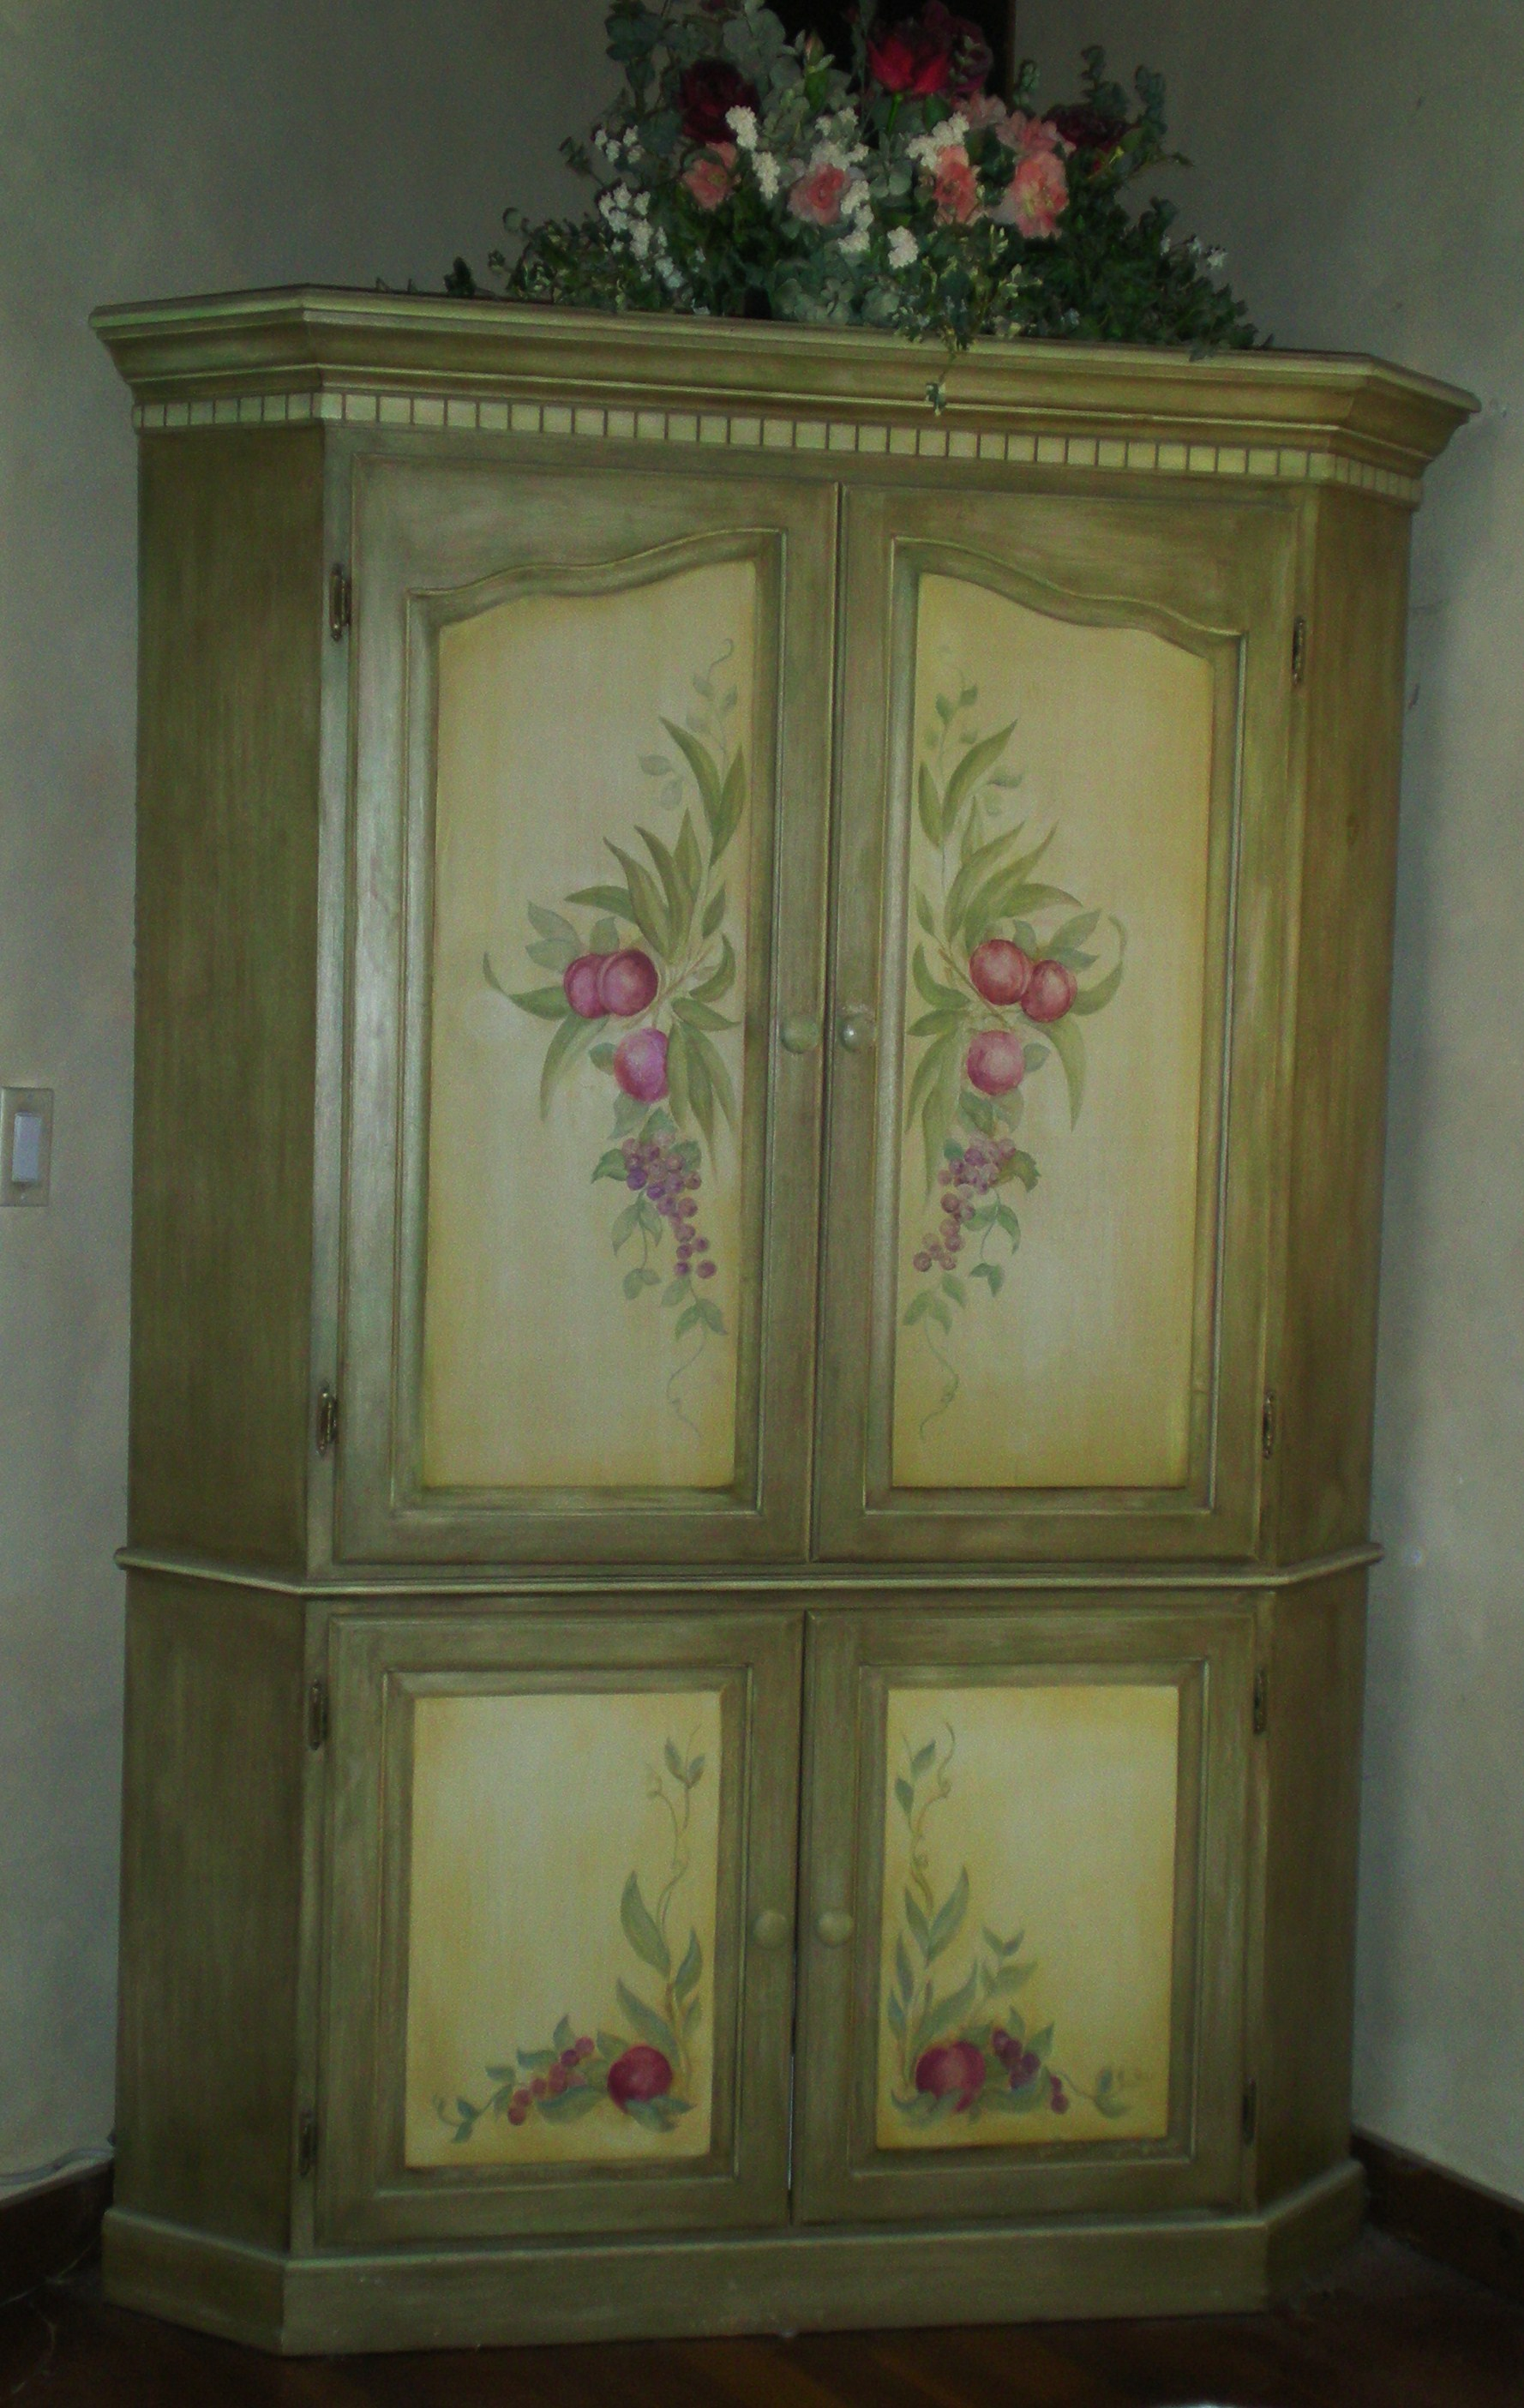 Painted flowers the master 39 s touch decorative painting Images of painted furniture